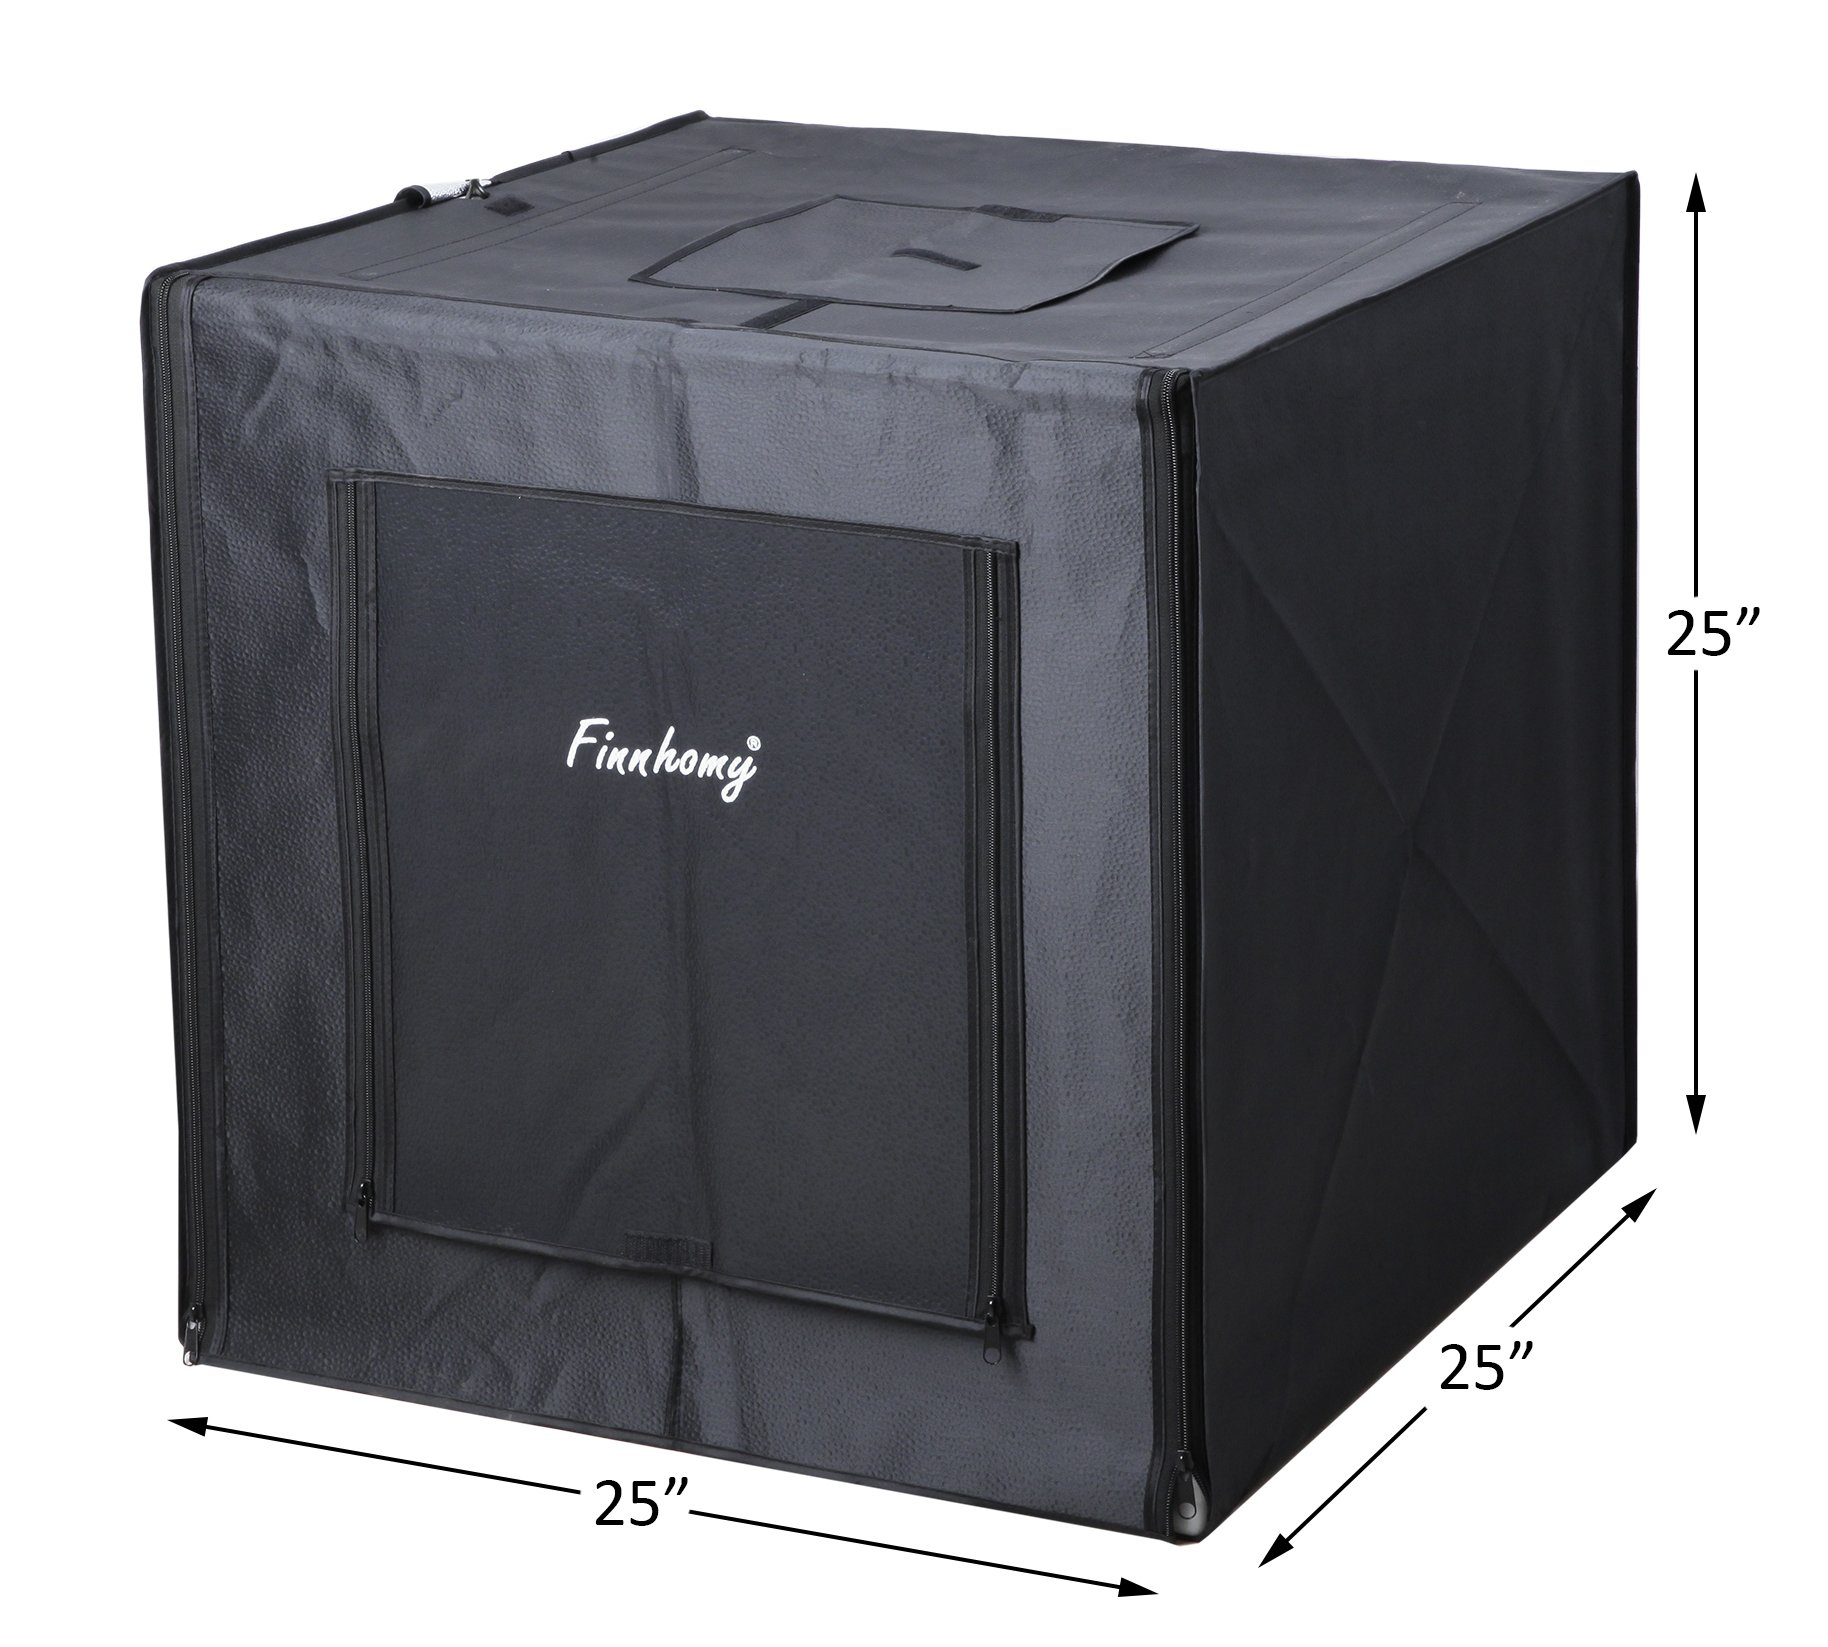 Finnhomy Professional Portable Photo Studio Photo Light Studio Photo Tent Light Box Table Top Photography Shooting Tent Box Lighting Kit, 24'' x 24'' Cube by Finnhomy (Image #6)